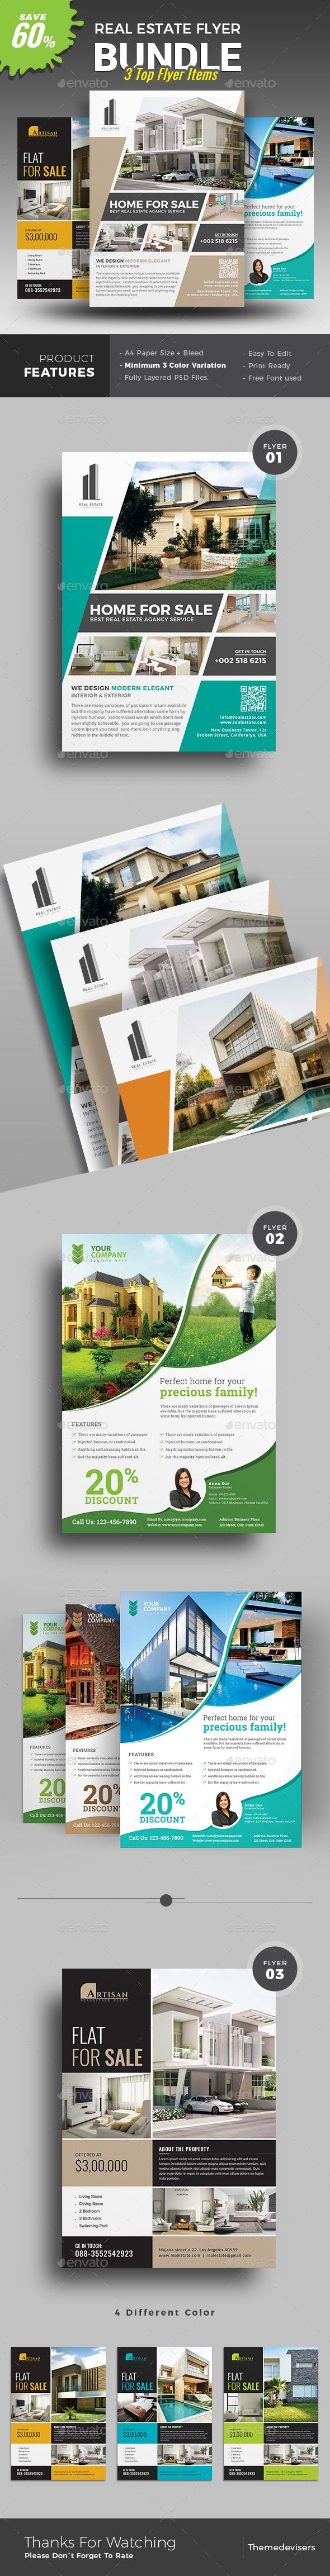 House for sale real estate flyer amp ad template word amp publisher - Real Estate Flyer